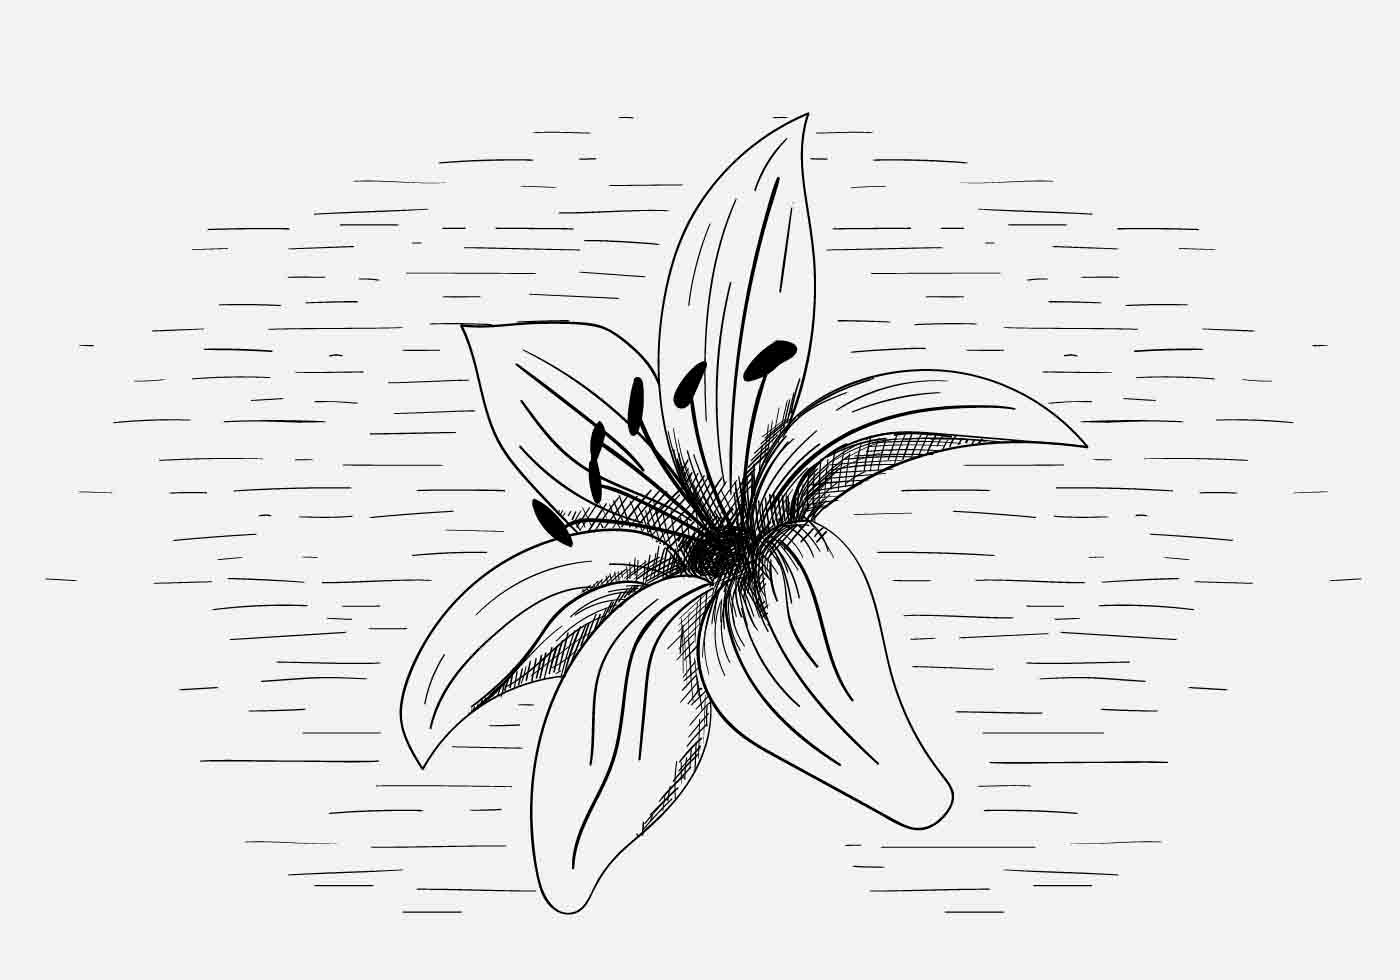 Free Vector Lily Flower Illustration Download Free Vector Art